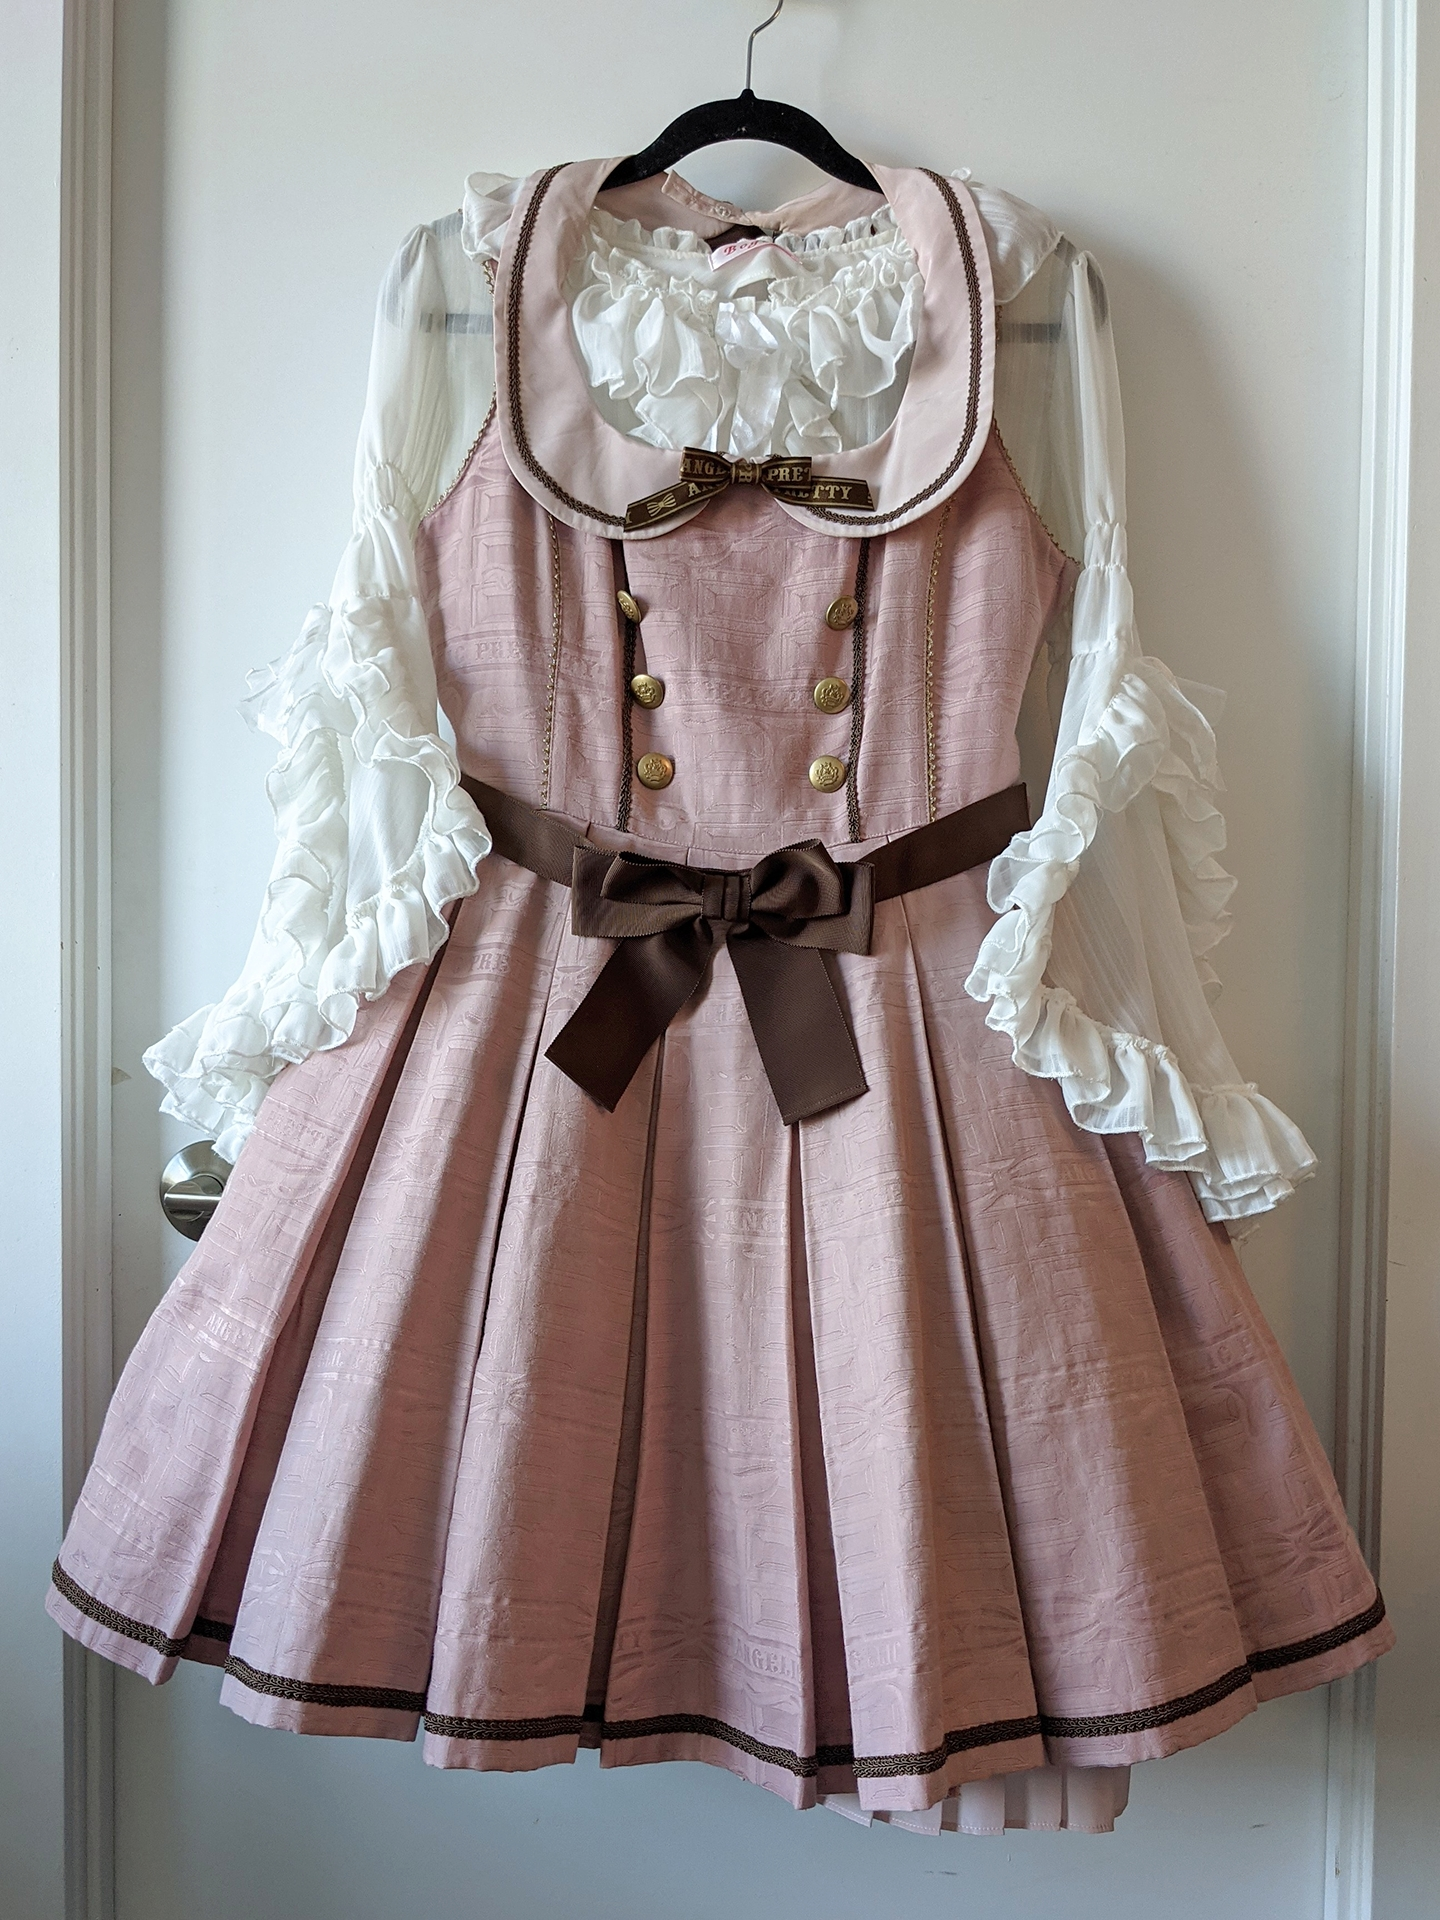 Melty Royal Chocolate by Angelic Pretty, blouse from Taobao